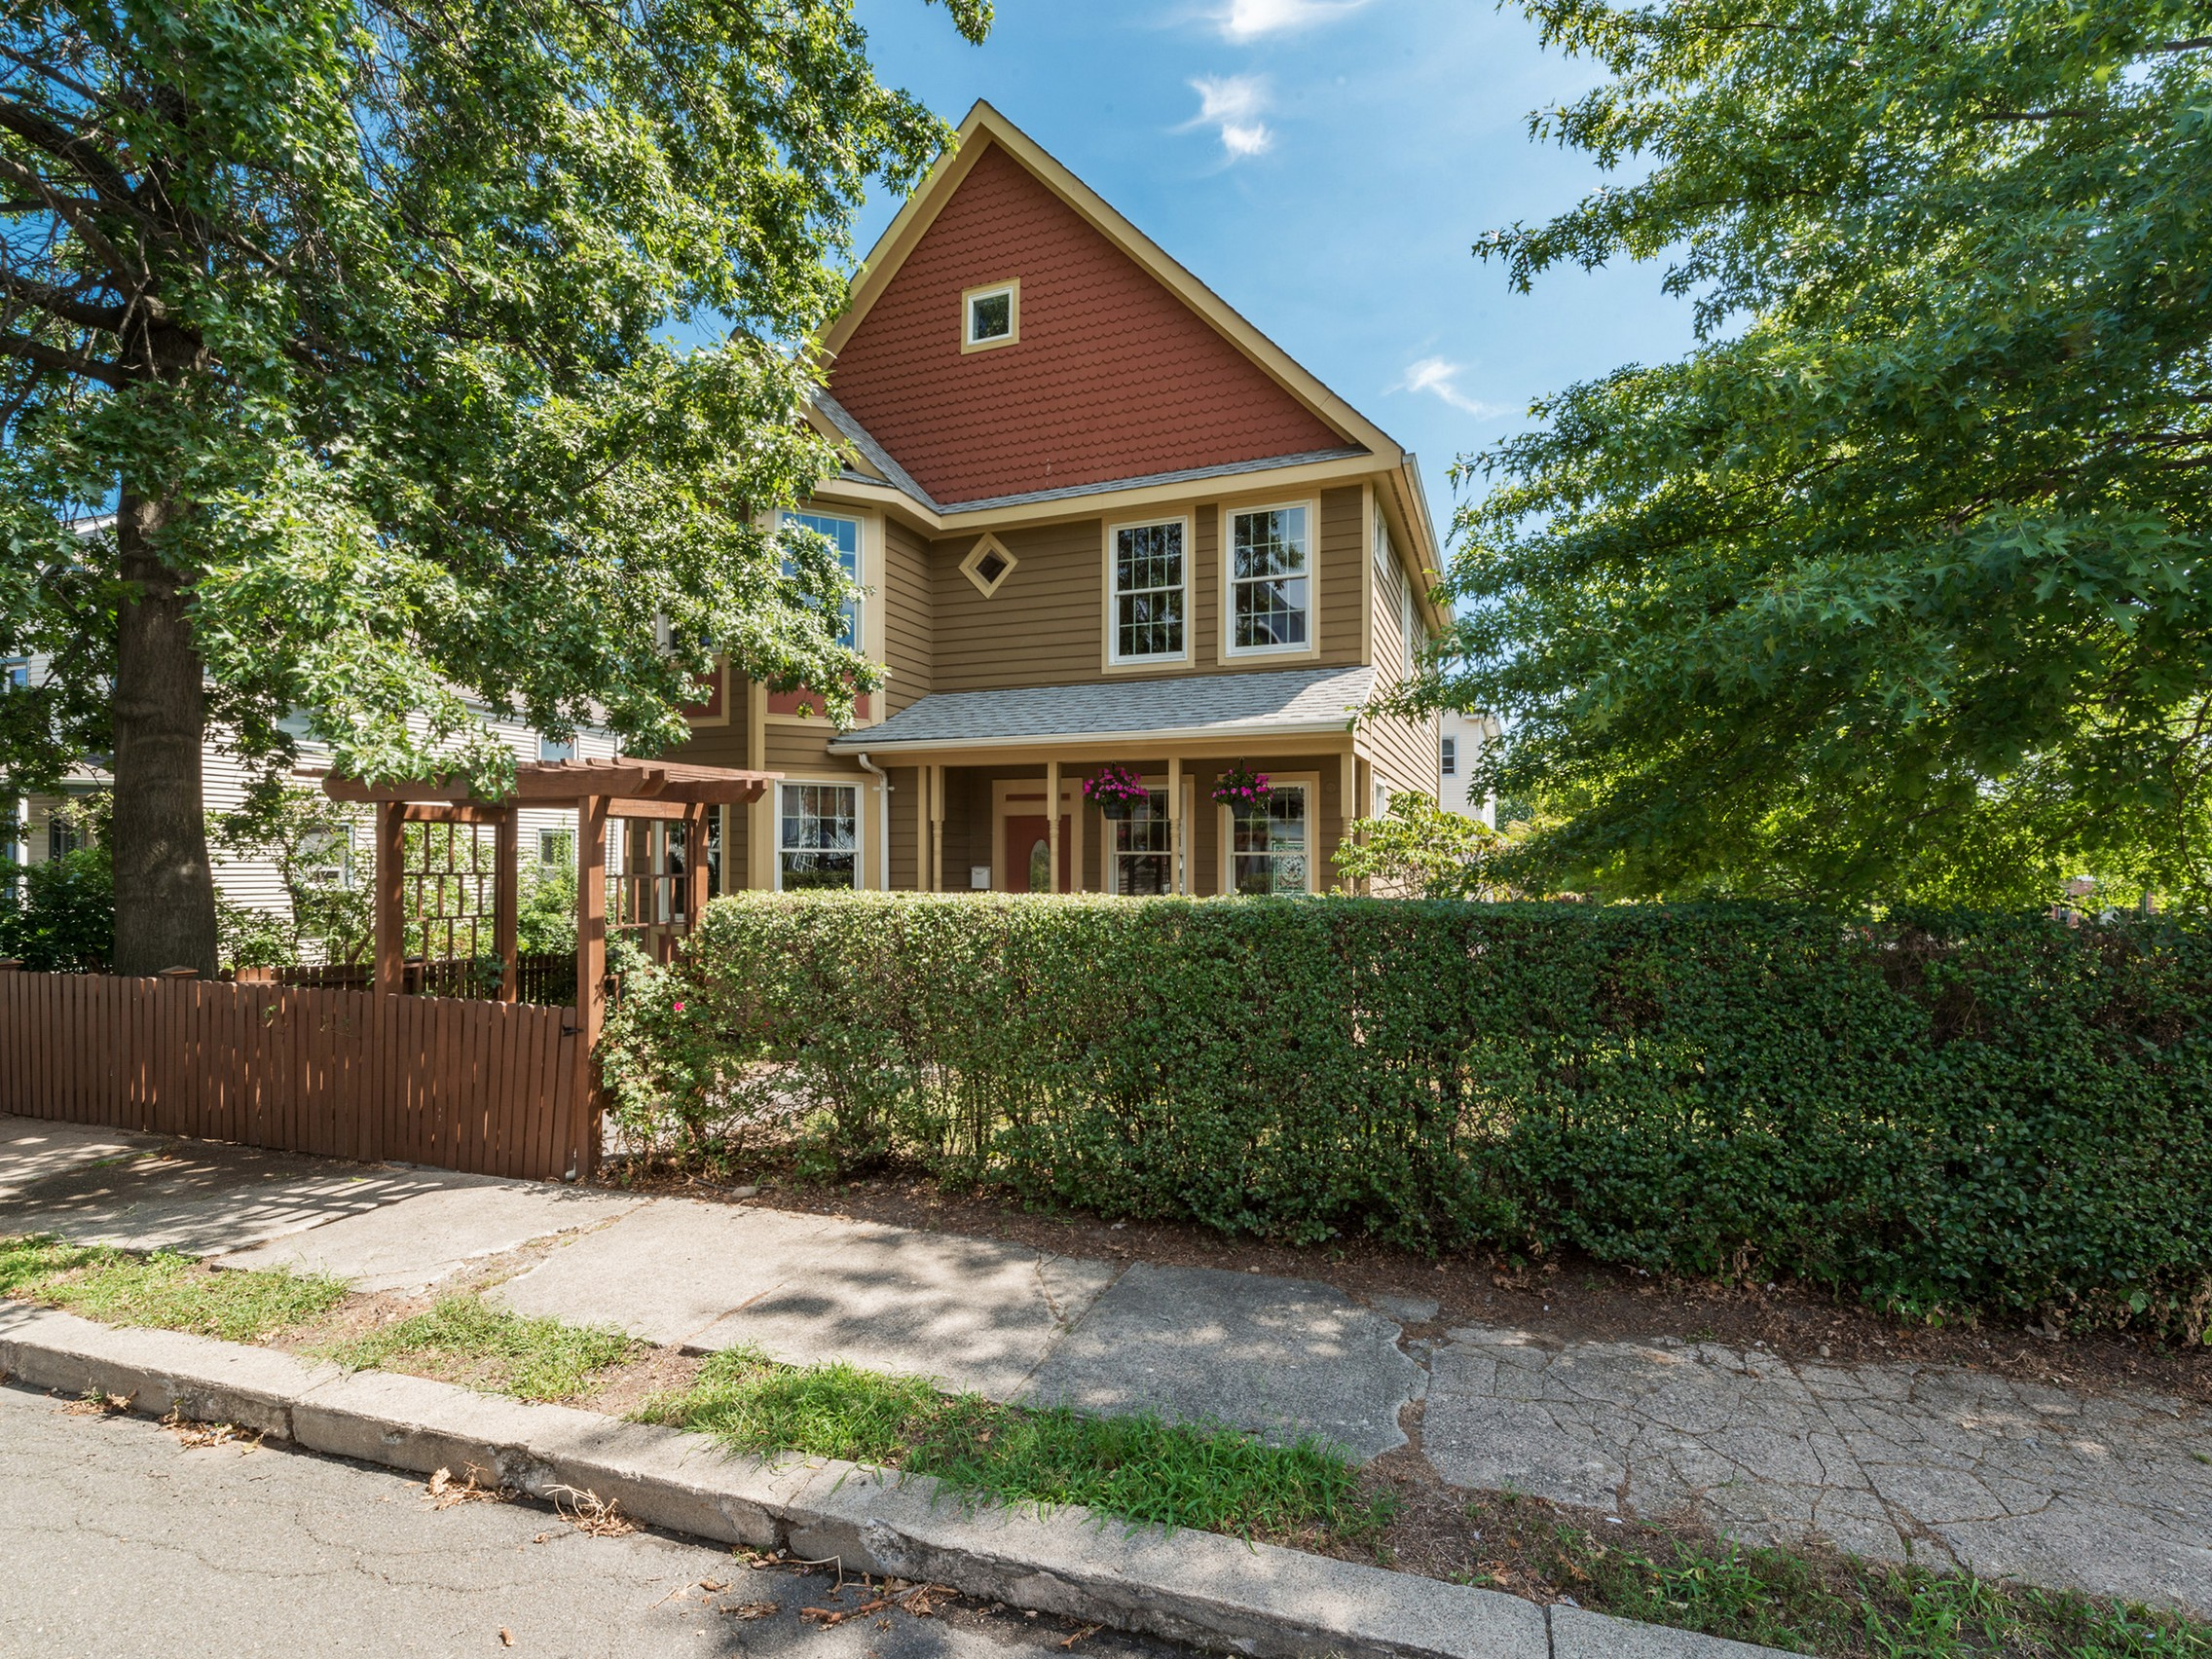 Single Family Home for Sale at Unique Nyack 15 Summit Street Nyack, New York, 10960 United States